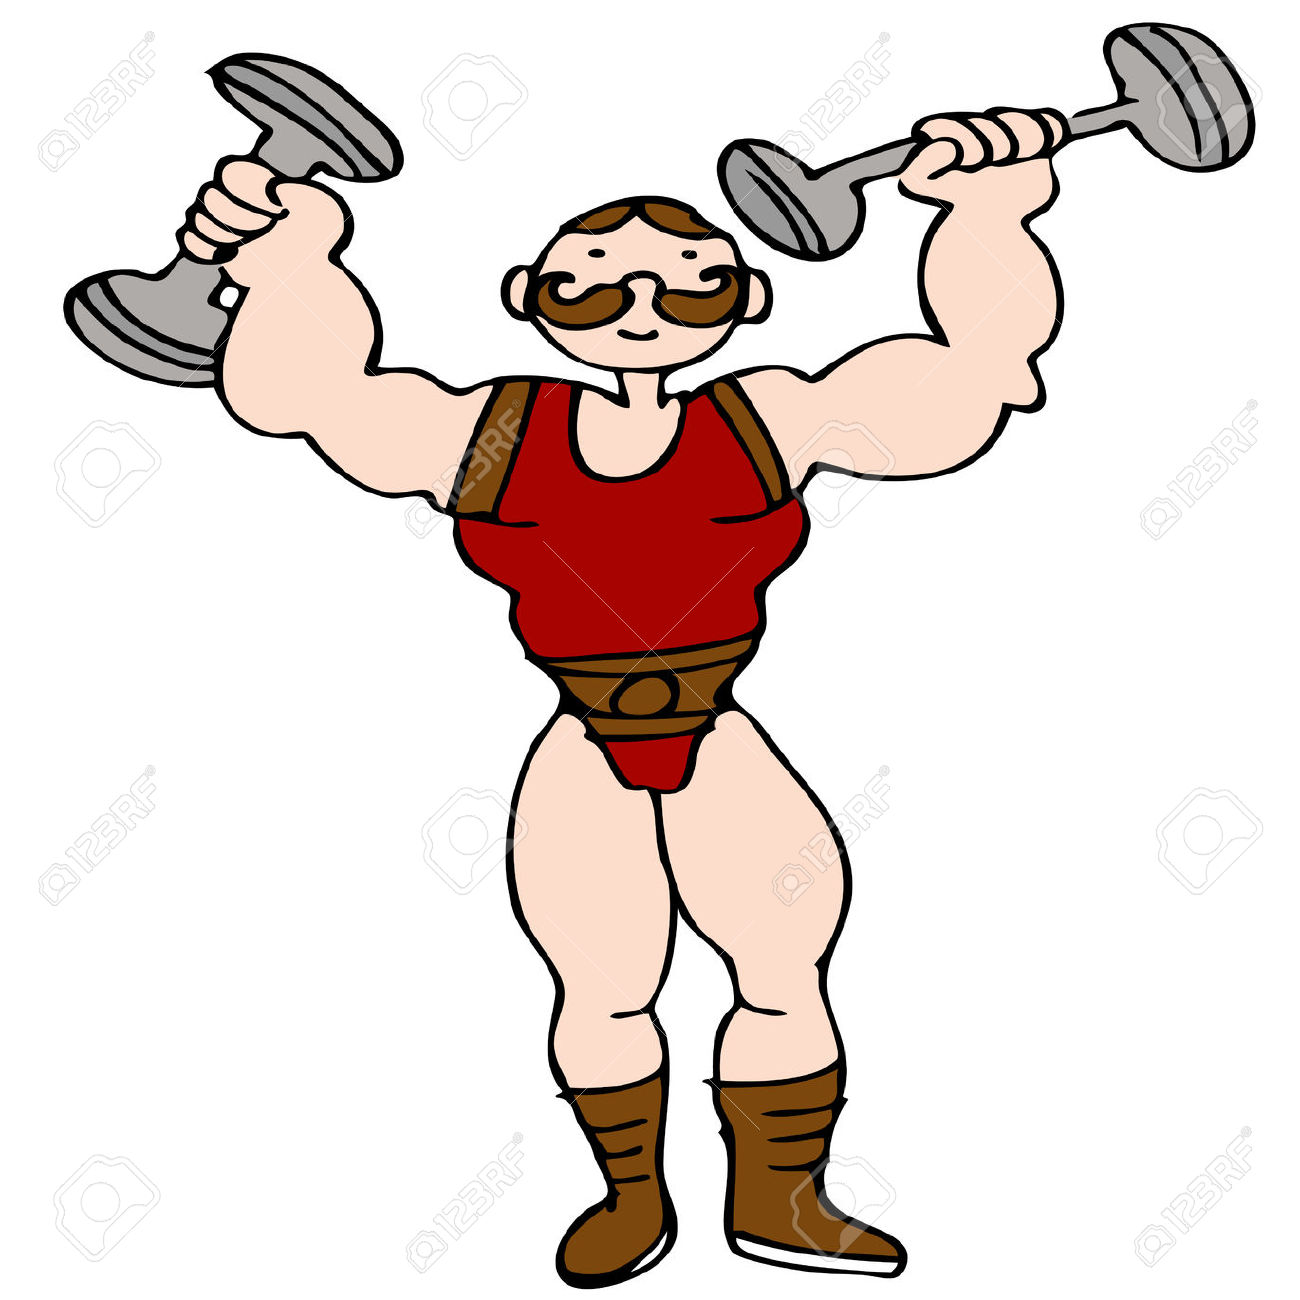 Circus Strong Man Clipart-Circus Strong Man Clipart-1